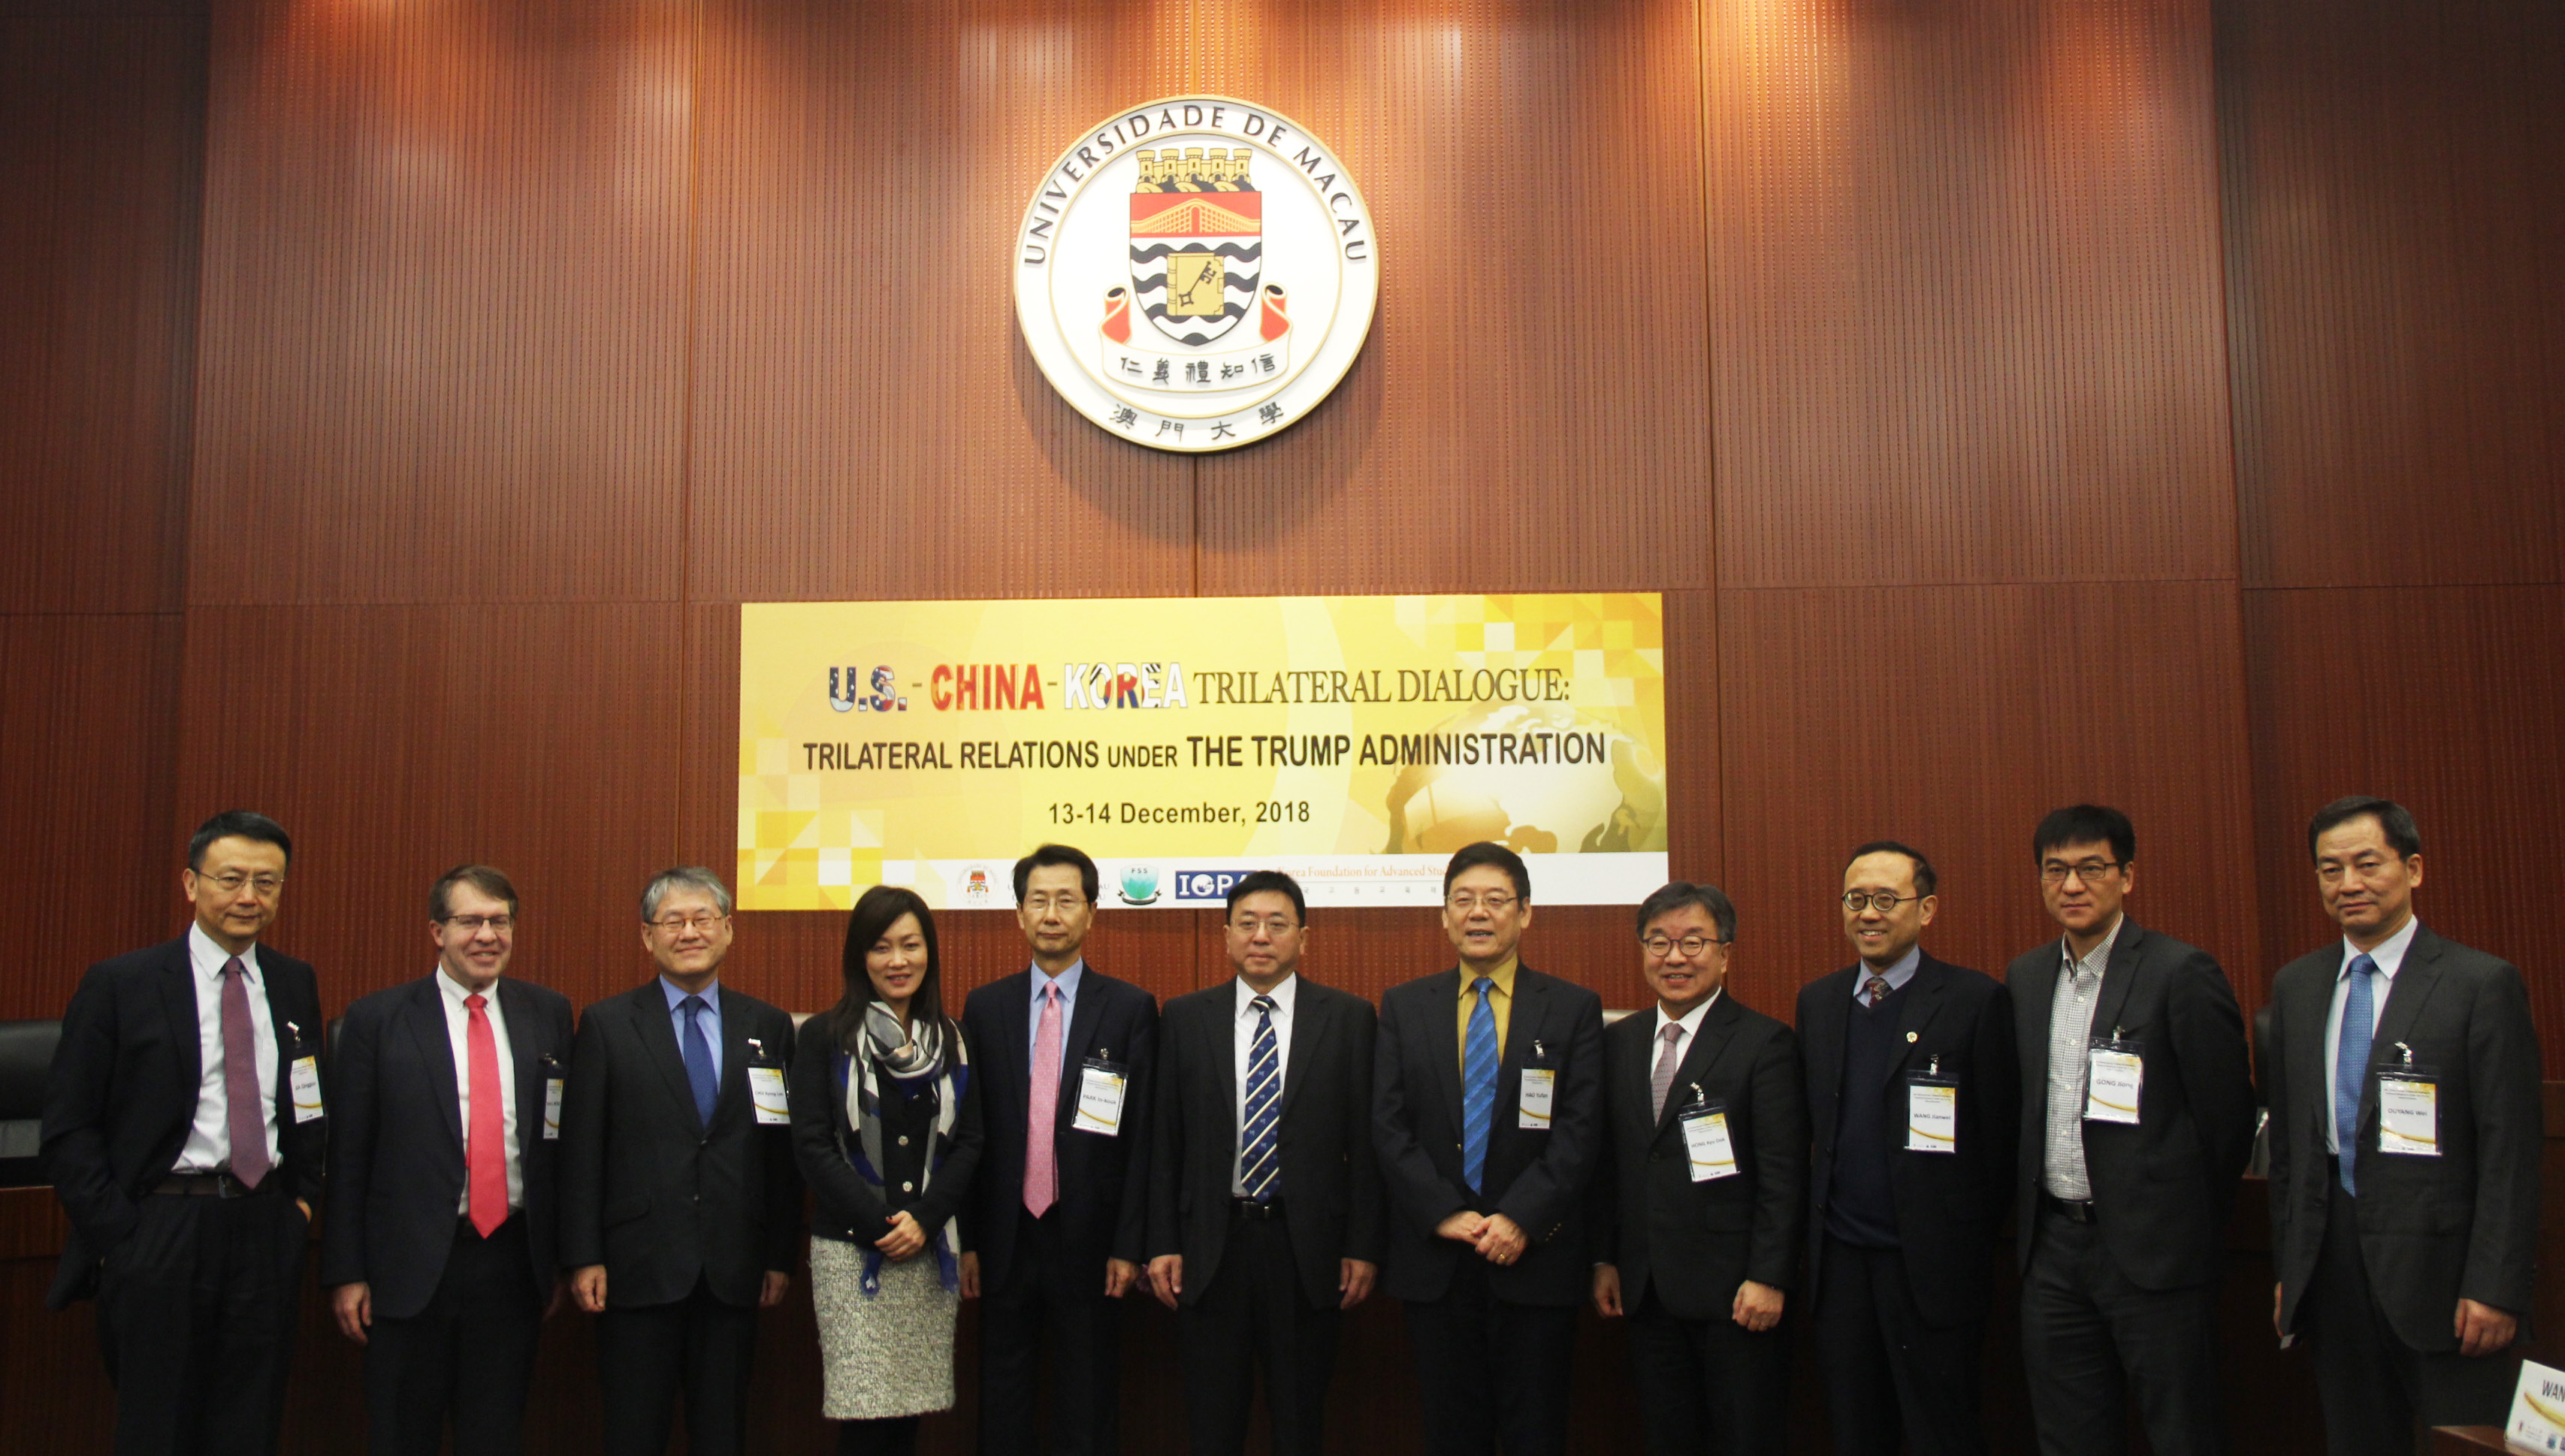 UM holds an international conference on China-US-Korea trilateral relations